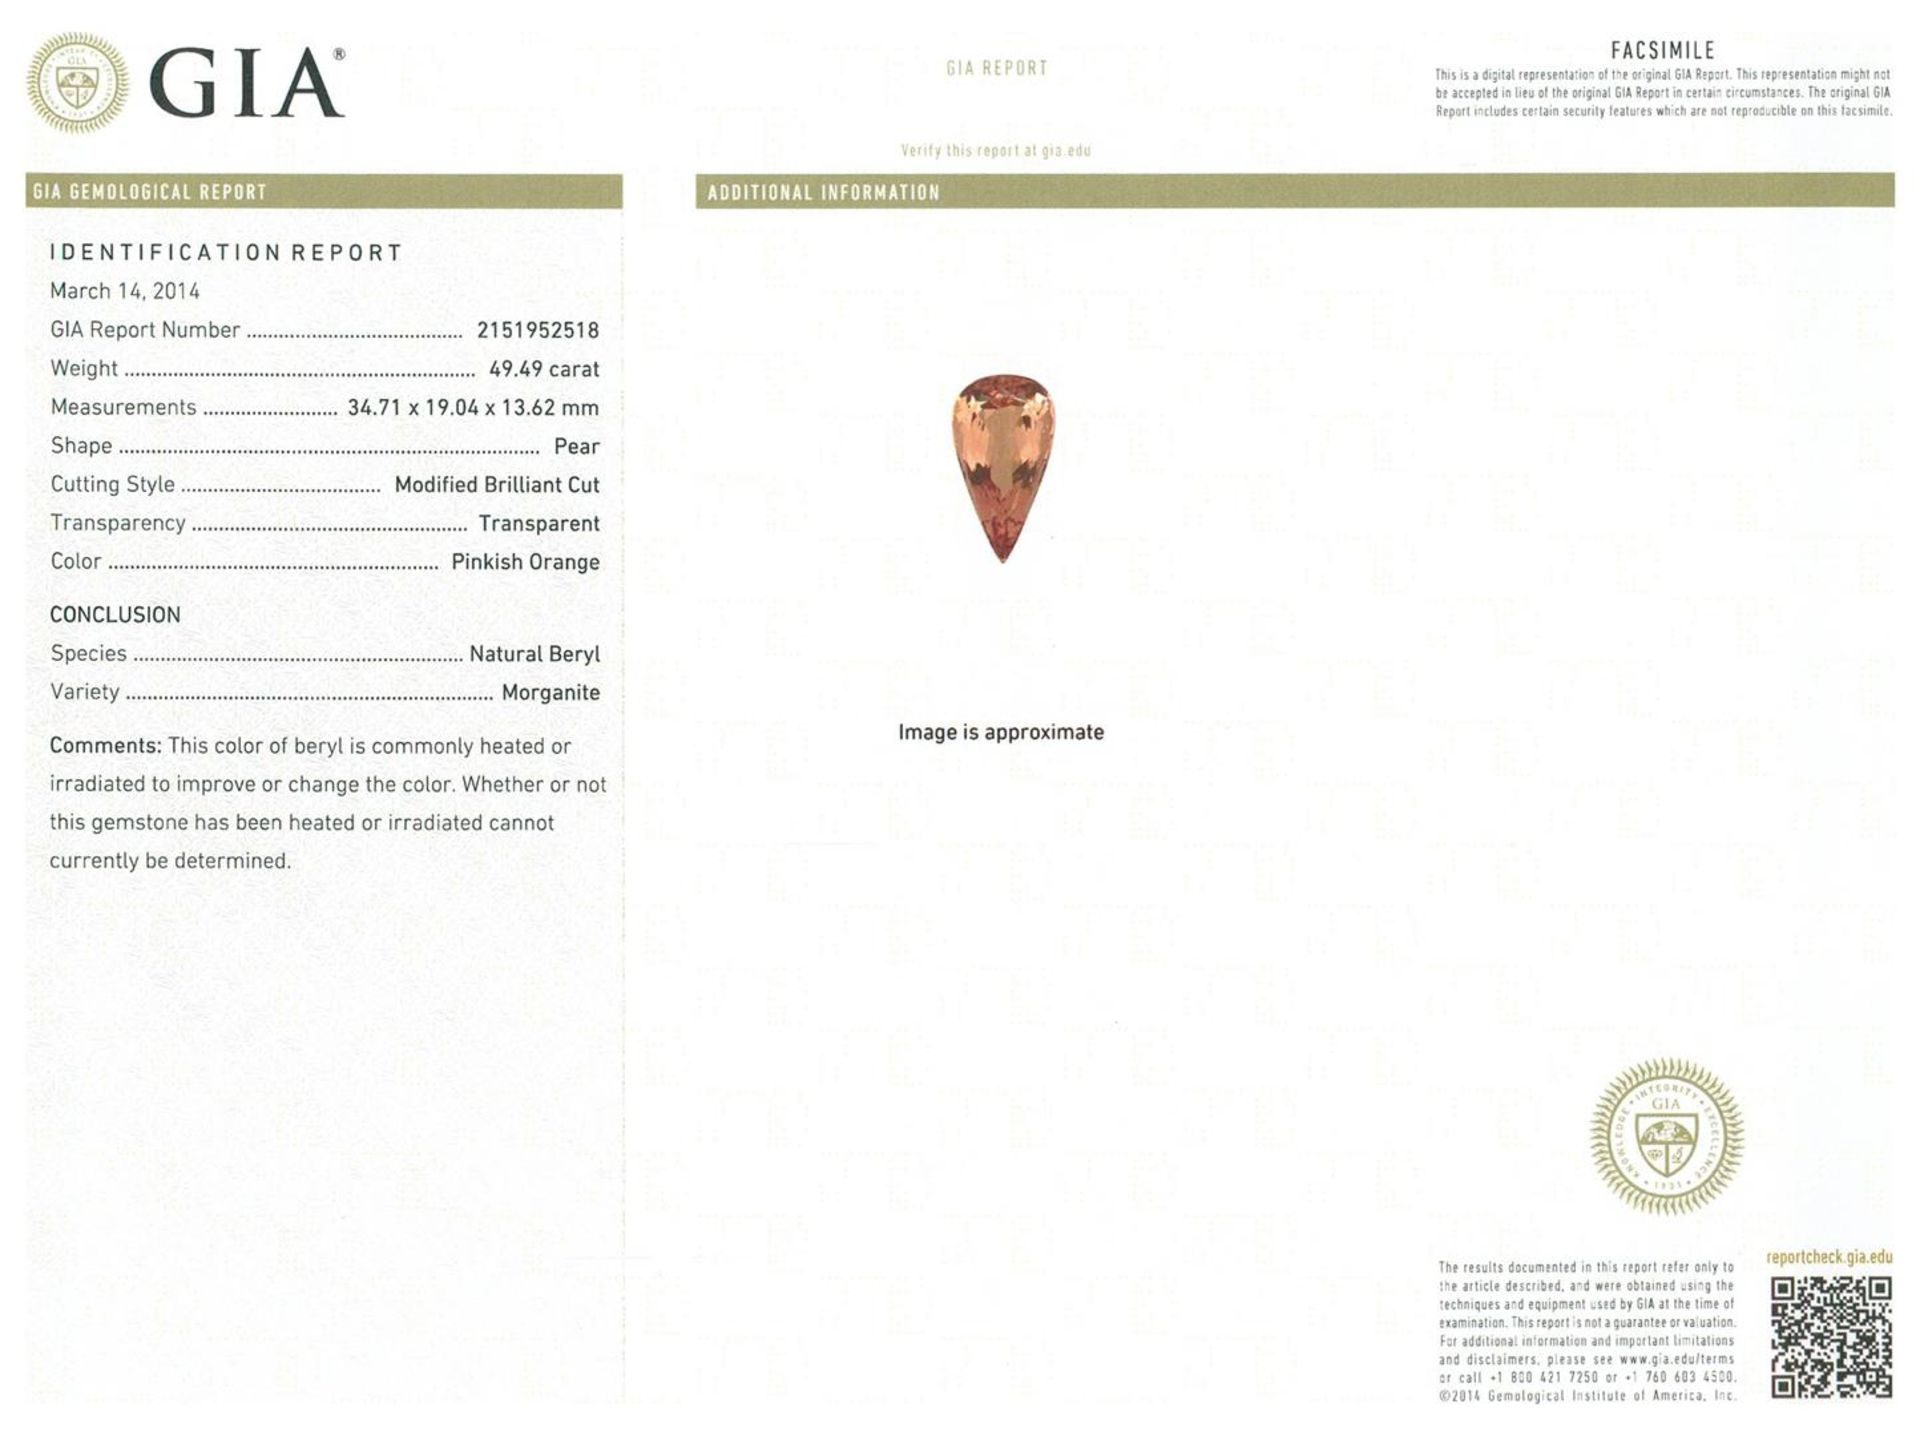 14KT Rose Gold GIA Certified 49.49ct Morganite and Diamond Pendant With Chain - Image 4 of 4